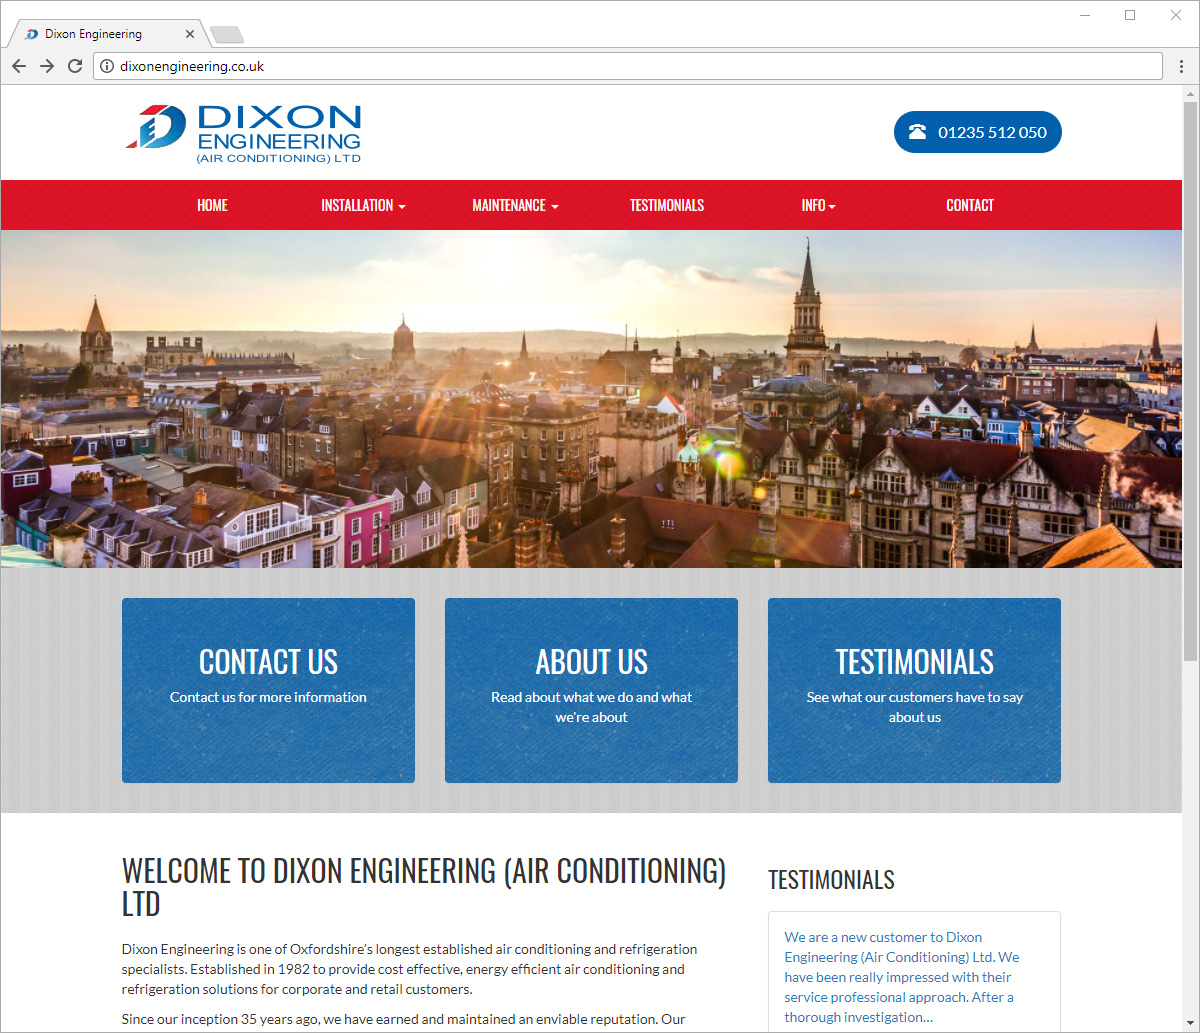 Computer screen preview of Dixon Engineering website